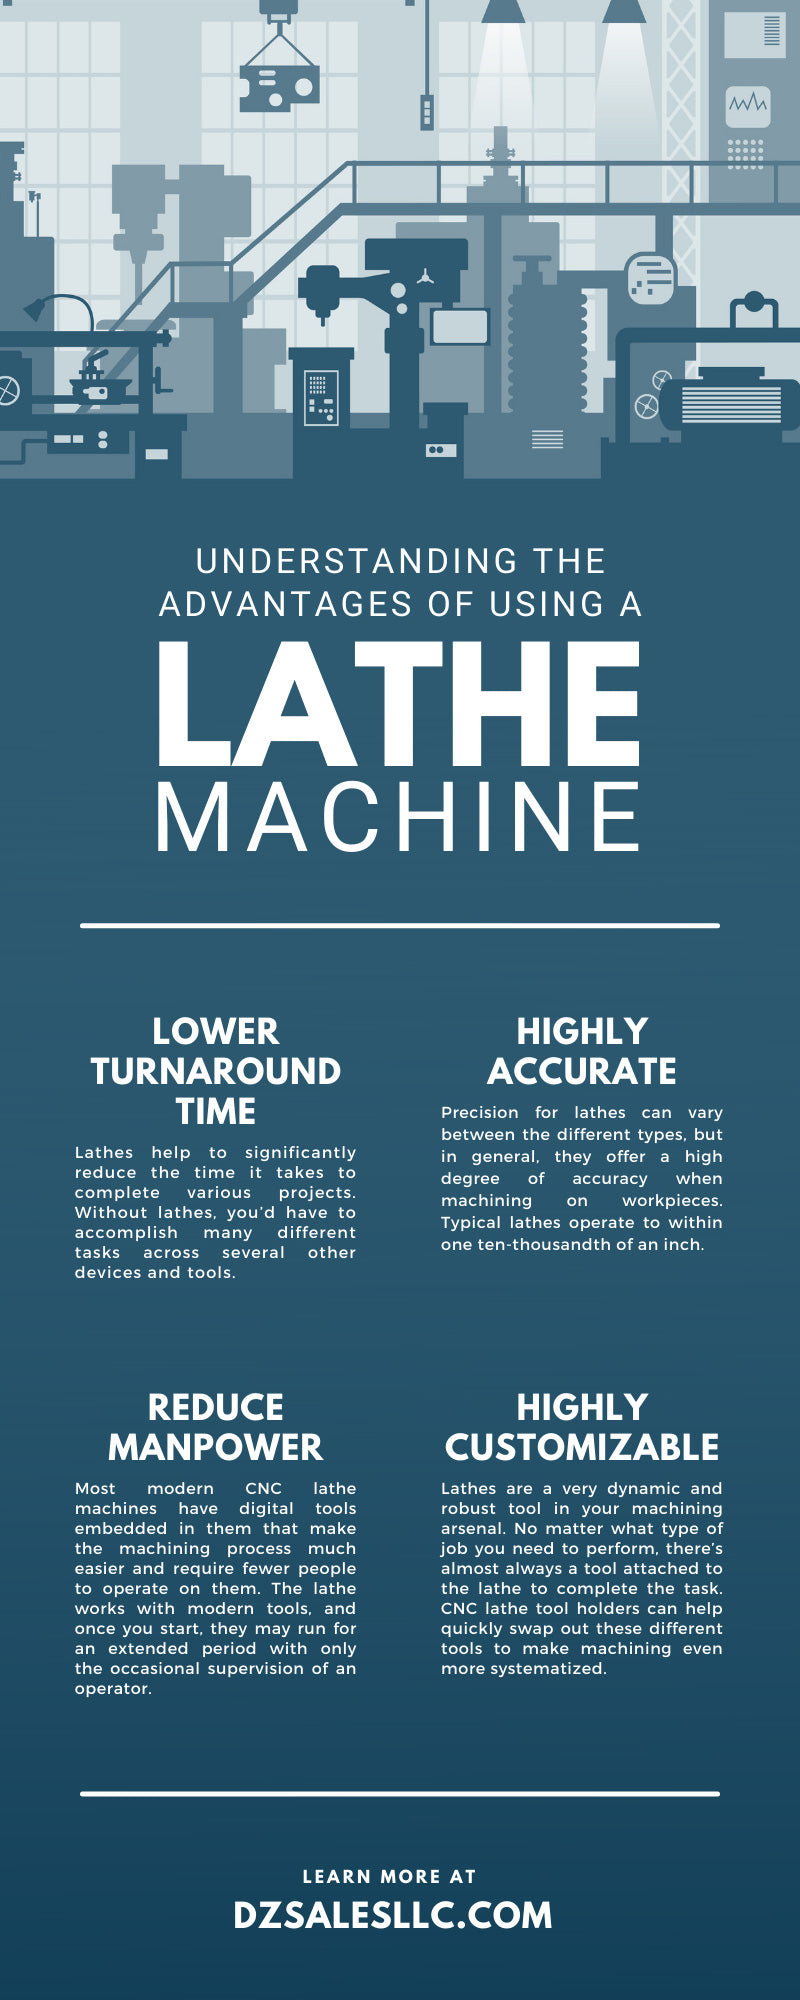 Understanding the Advantages of Using a Lathe Machine